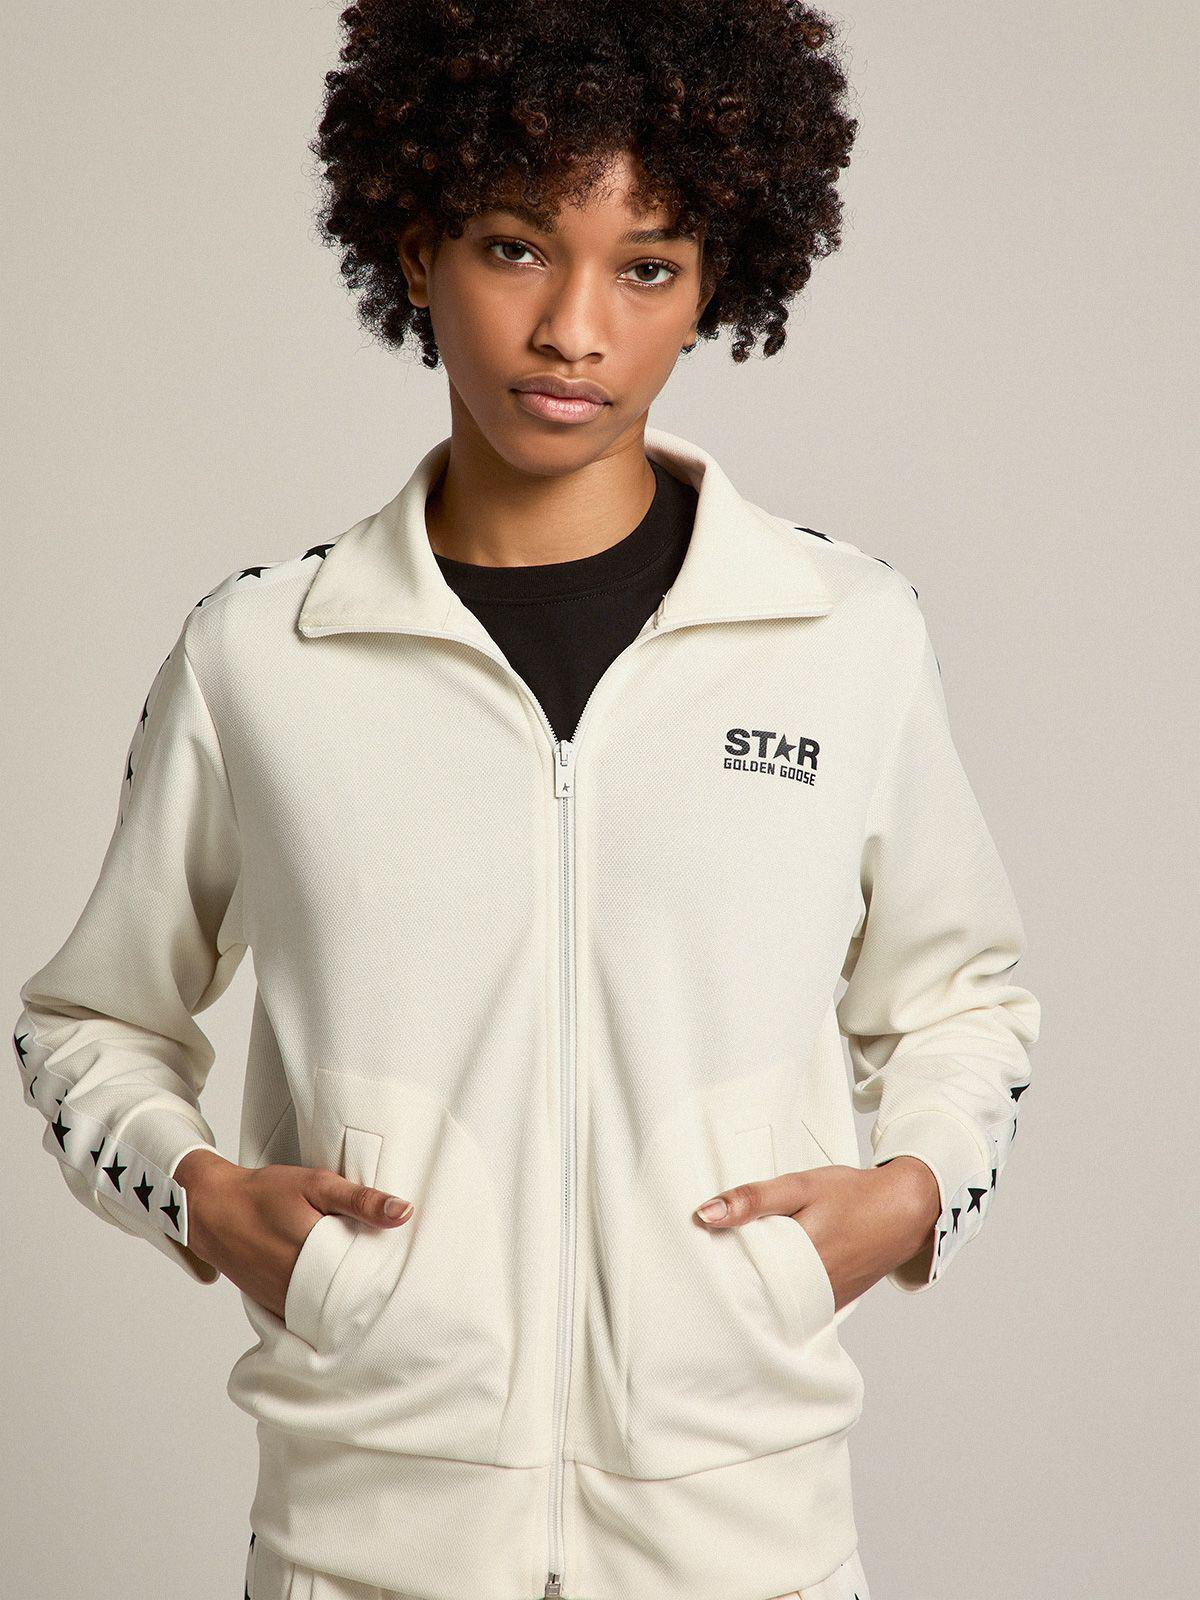 Papyrus white Denise Star Collection zipped sweatshirt with contrasting black stars